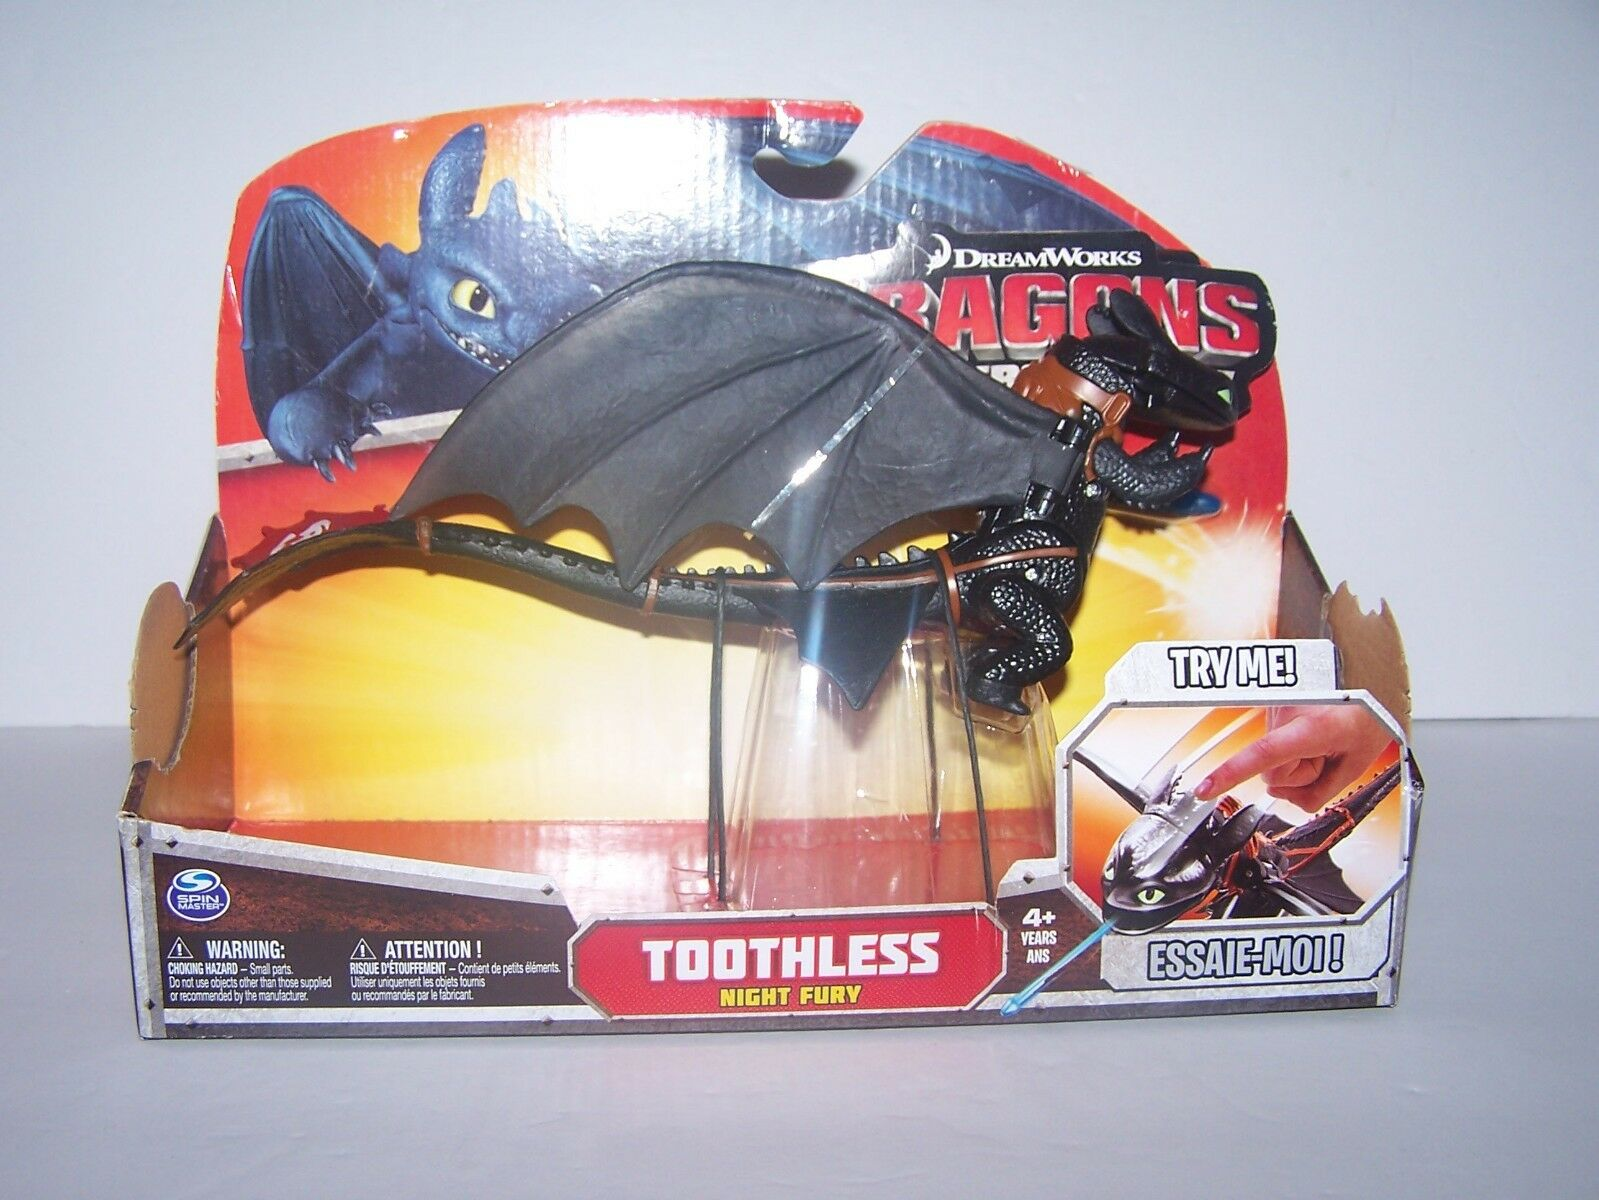 How To Train Dragons Defenders Of Berk Toothless Night Fury  10  cifra nuovo  punto vendita